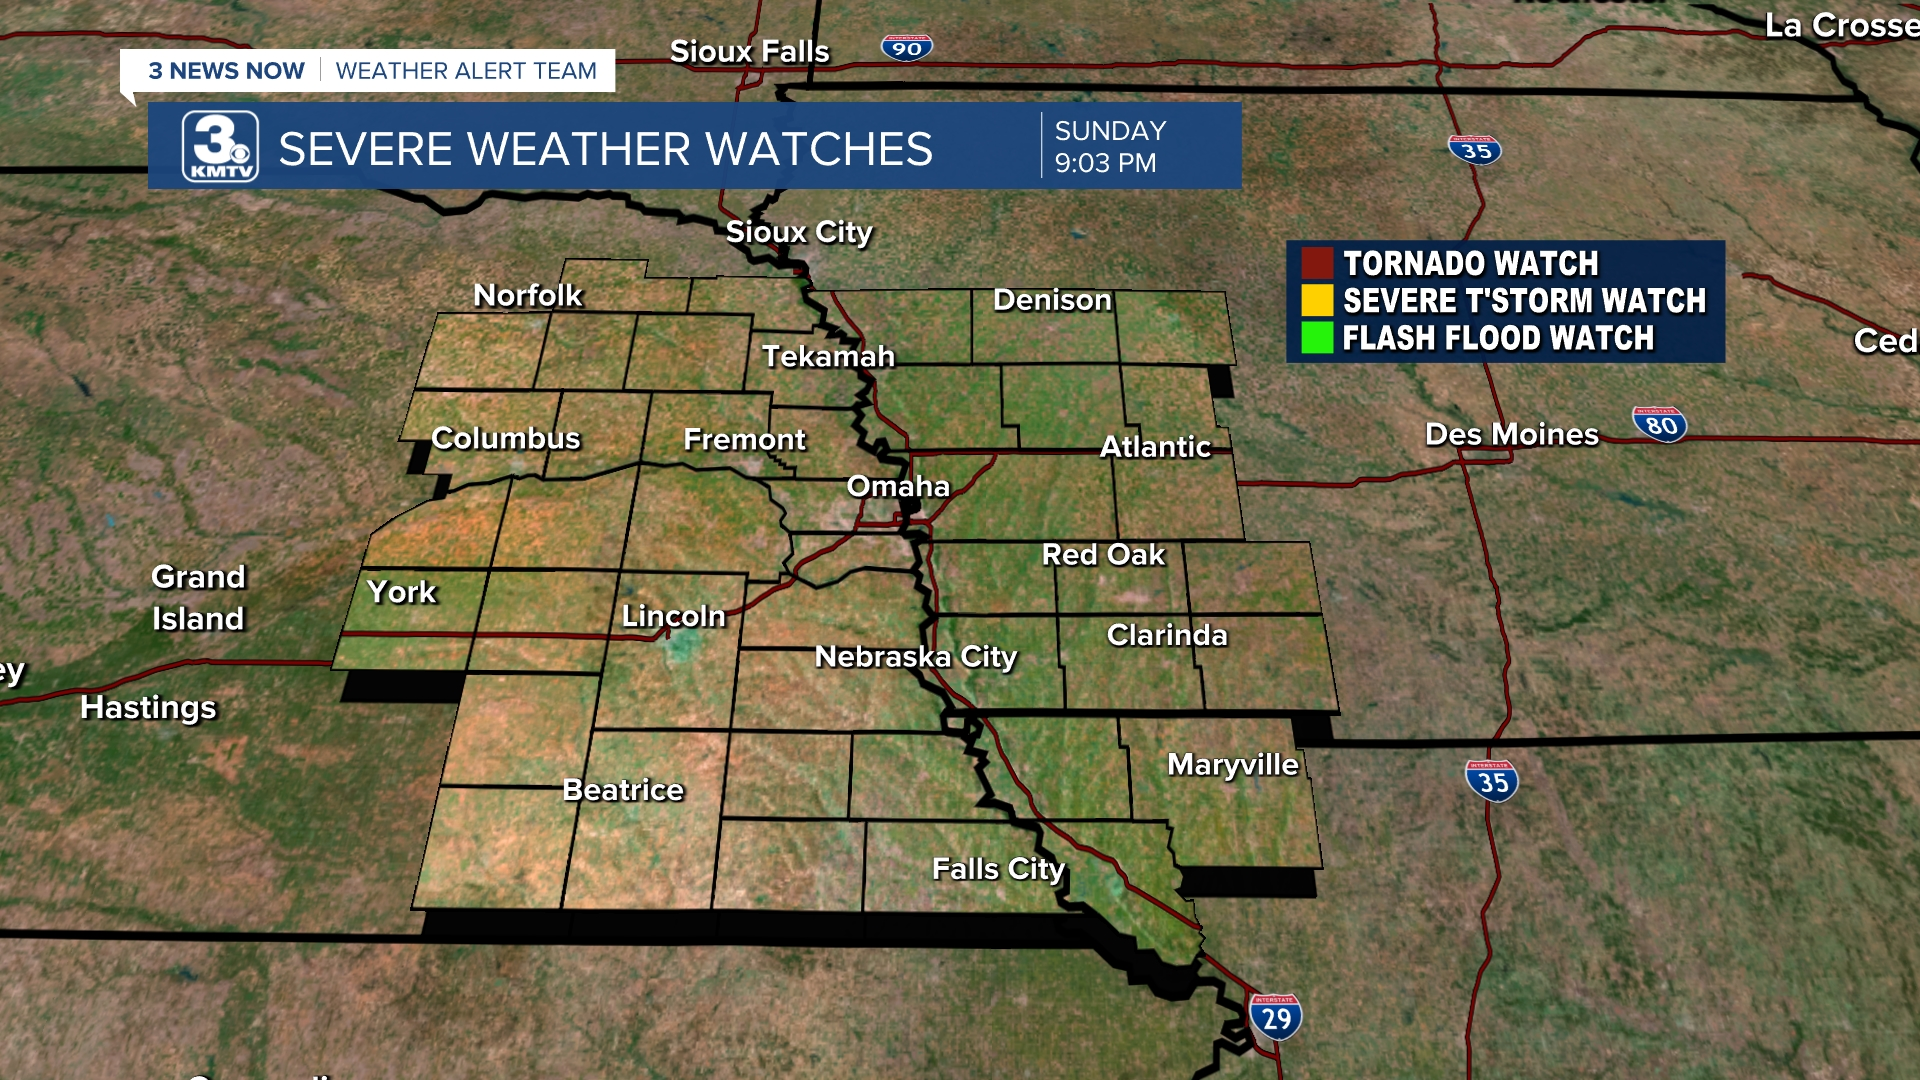 Watches - Prism Weather Alerts